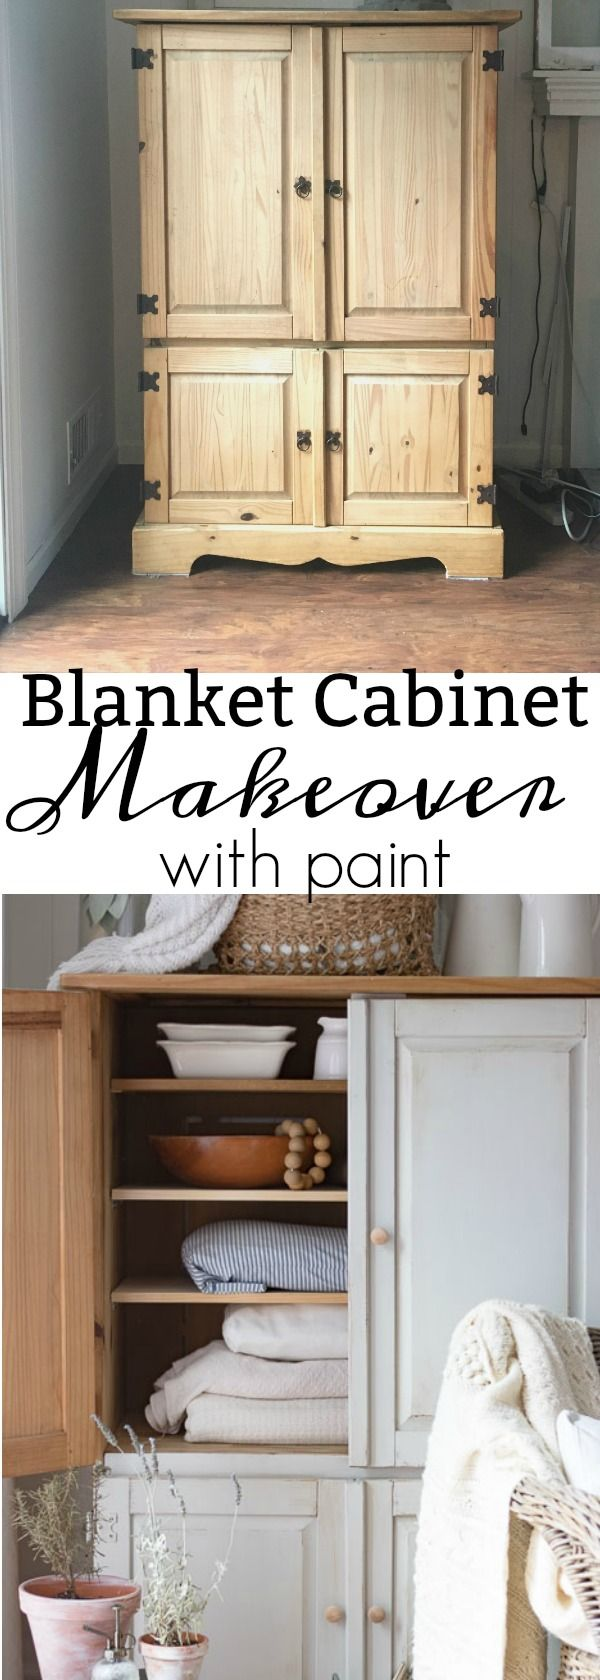 Pin by seeking lavender lane on can do pinners pinterest living